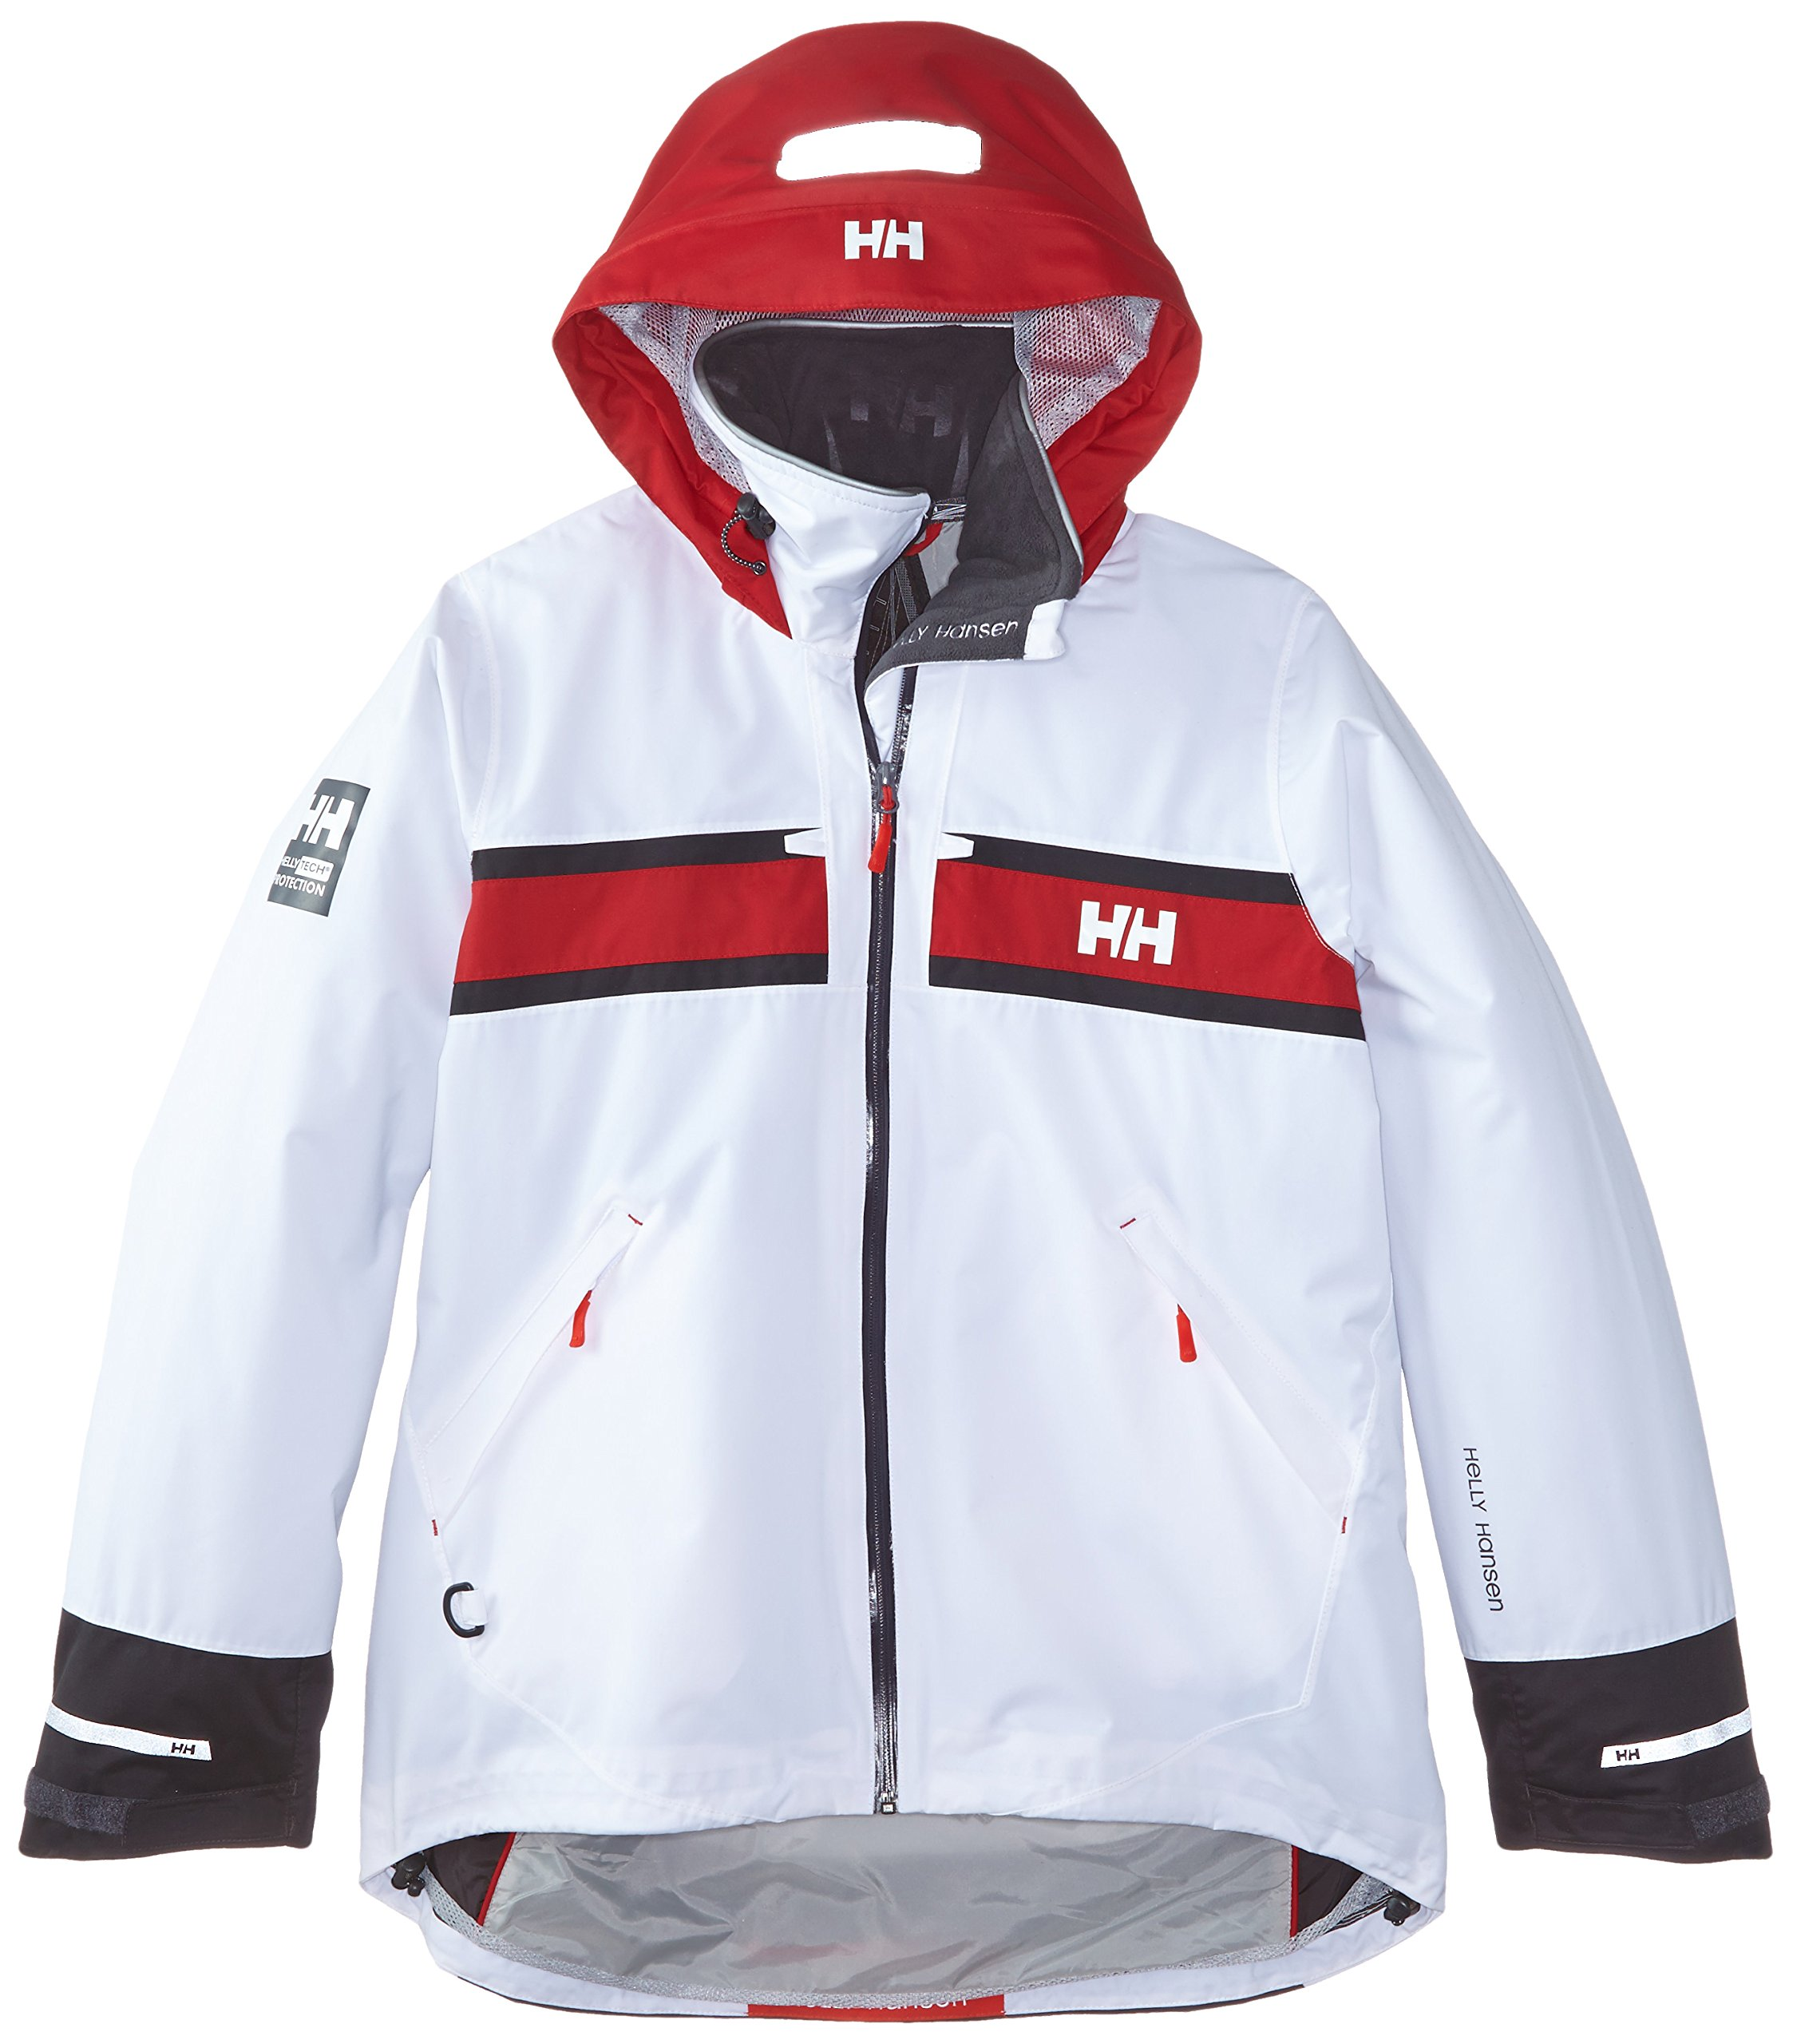 Helly Hansen Women's Salt Rain and Sailing Jacket, White, Medium